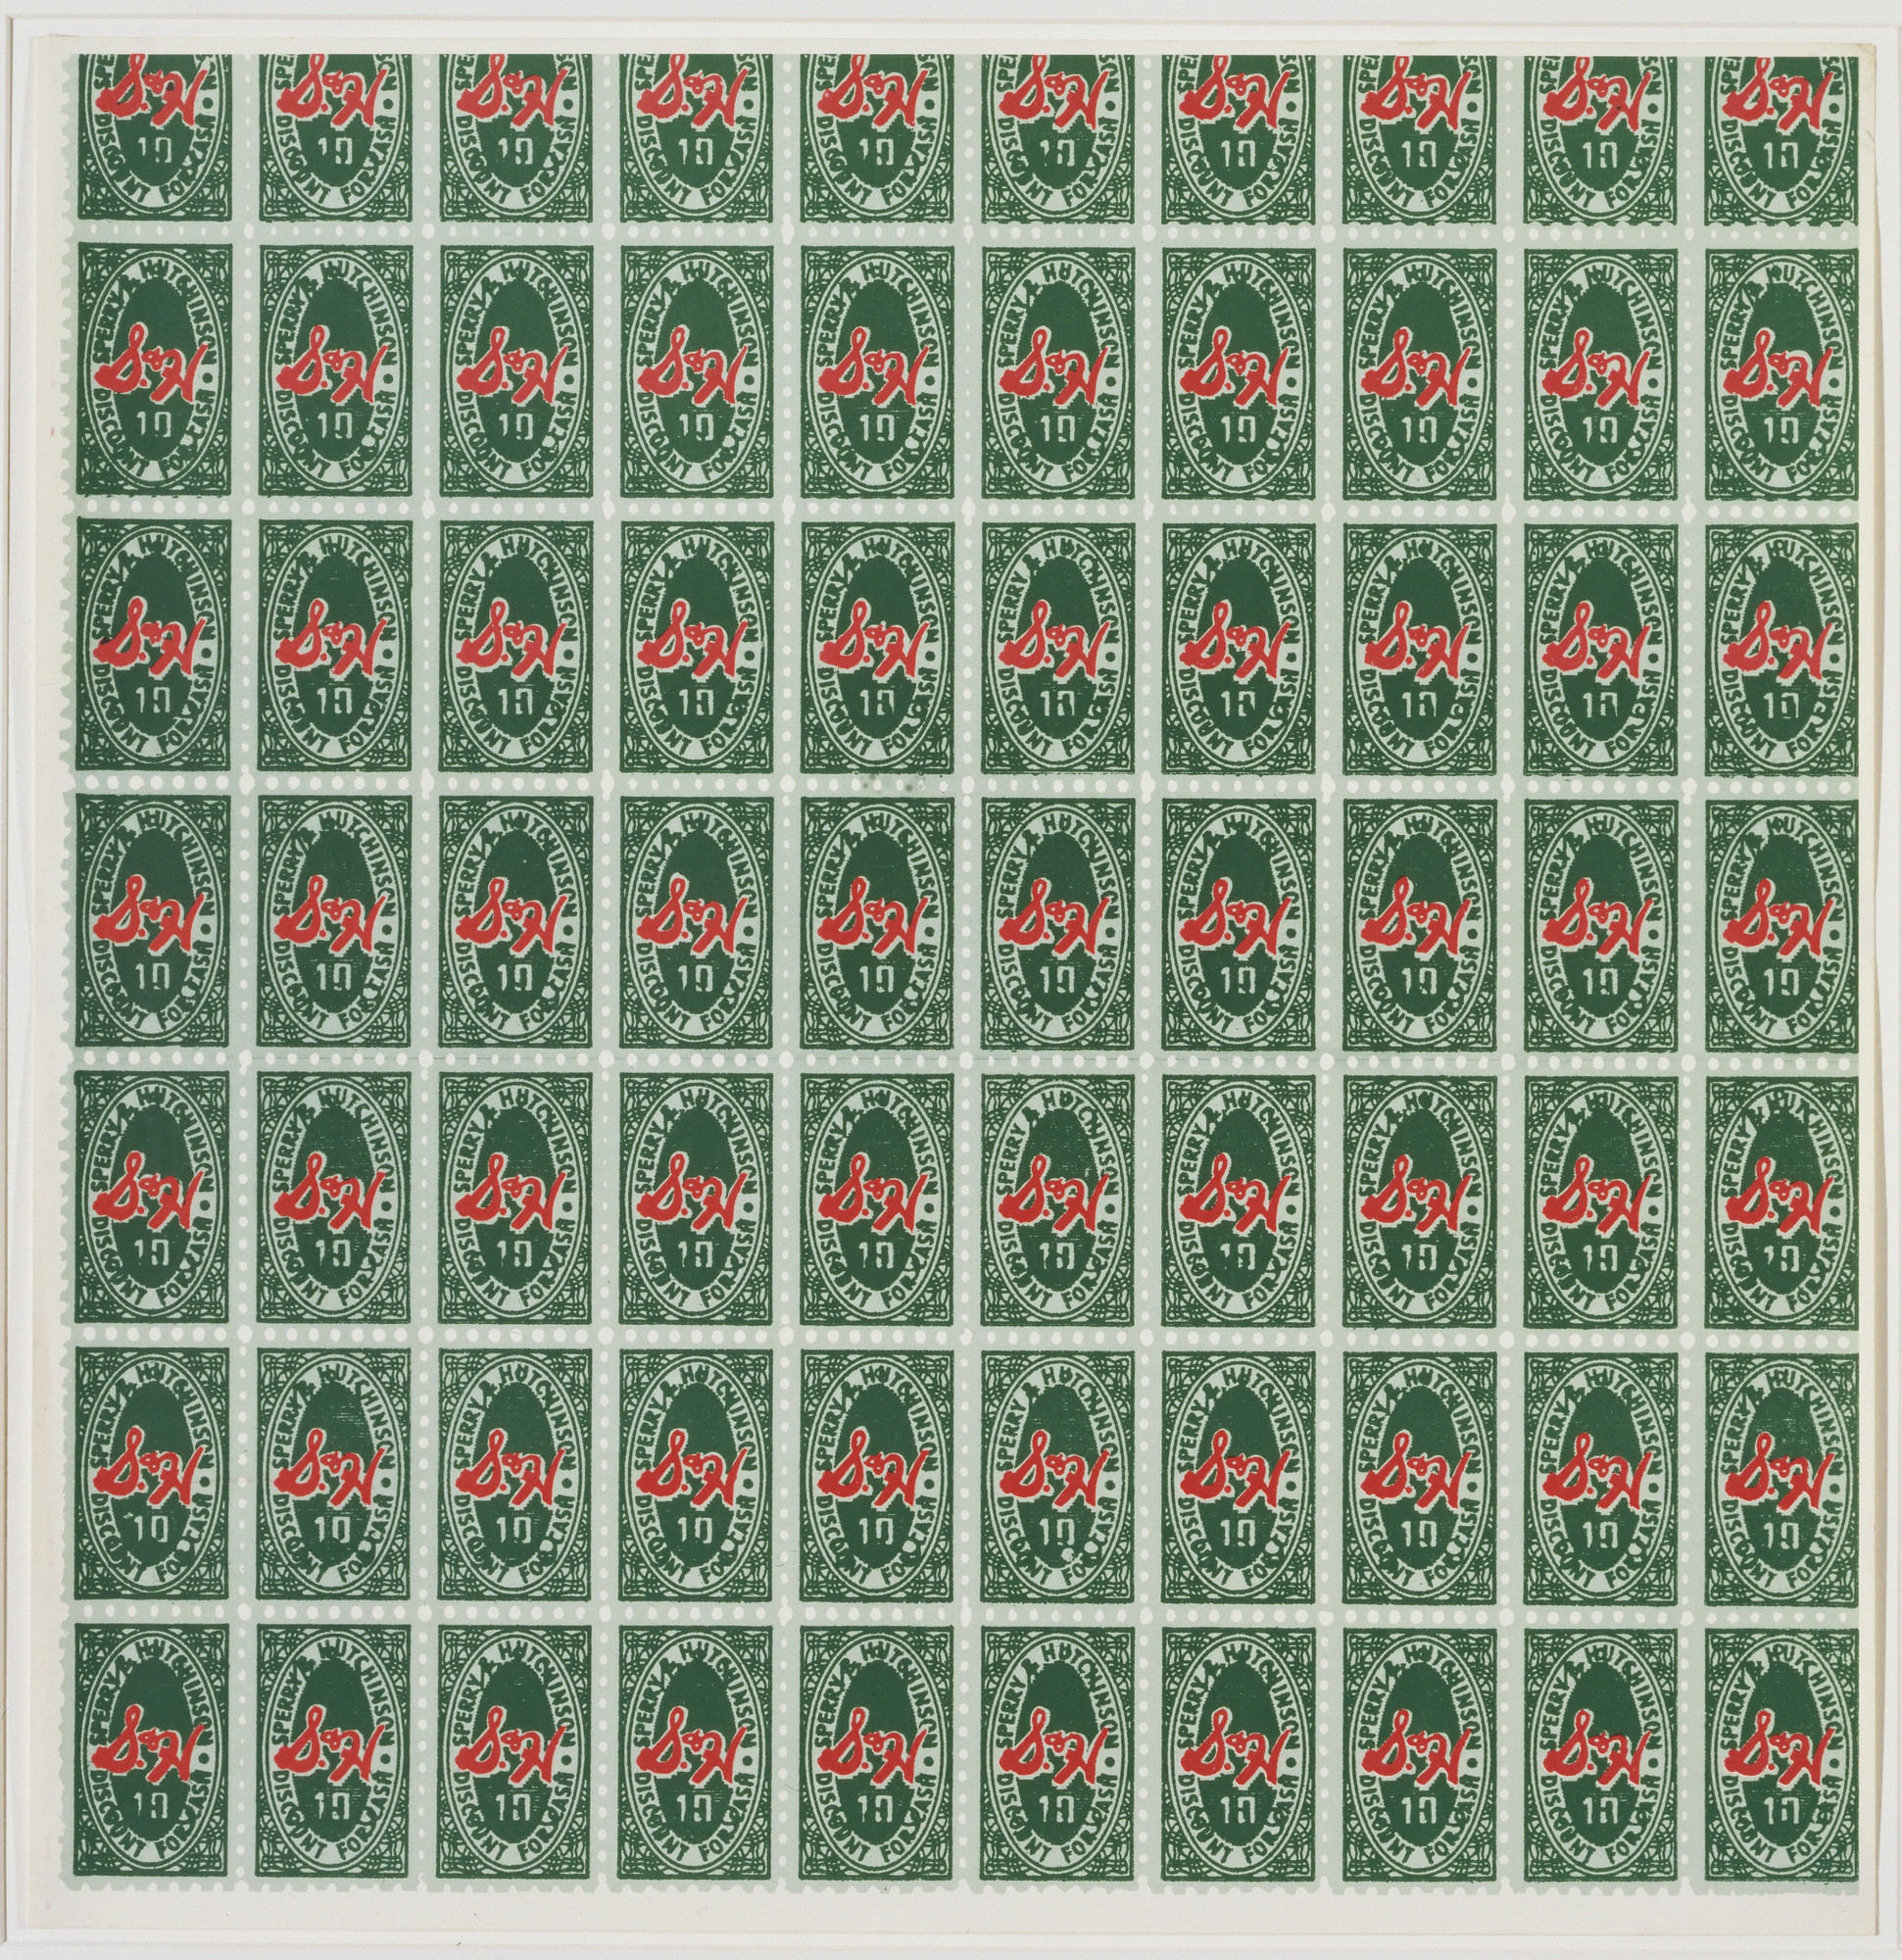 Andy Warhol. S&H Green Stamps. 1965